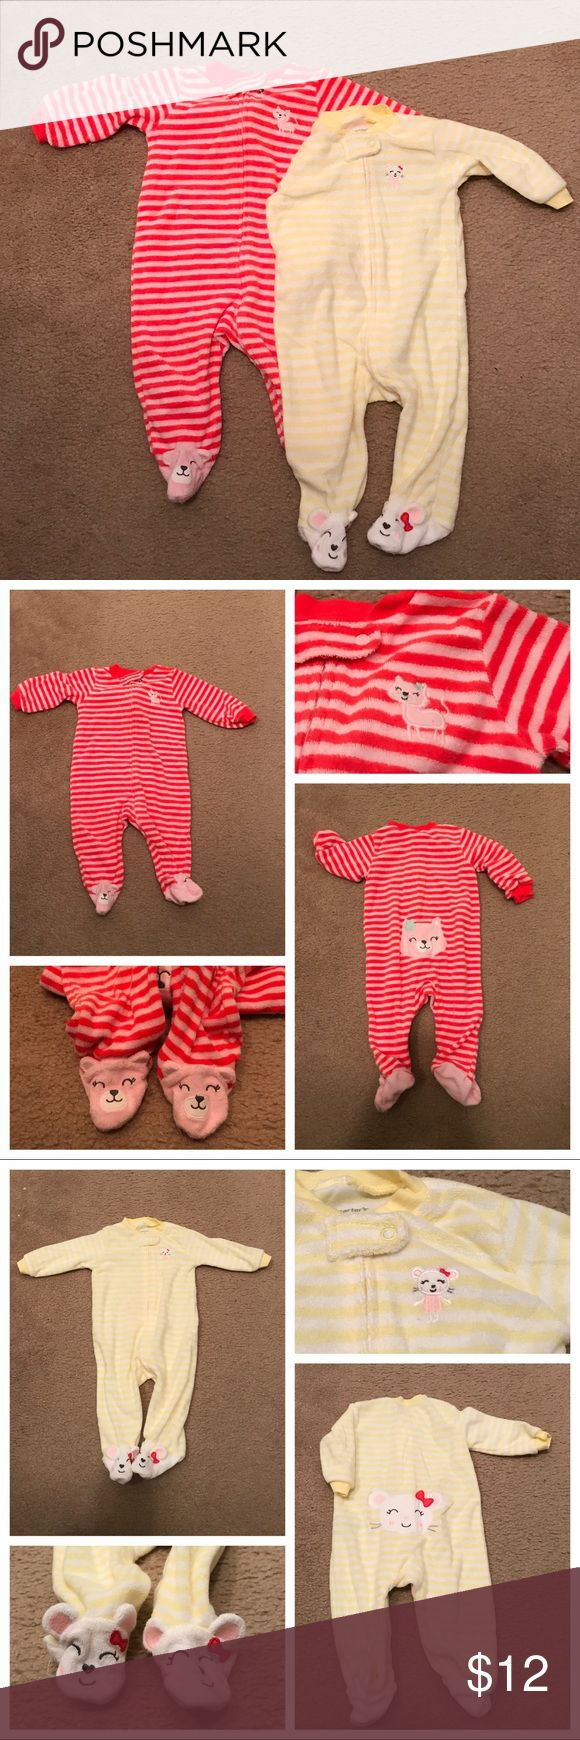 2 sets of terry cloth footy pajamas This is for the set of 2 hardly used terry cloth pajamas. One is pink/orange striped, zip up front, a kitten on the left chest, kitty feet and kitty on the booty. The second is yellow/white stripedX zip up front, a ballet mouse on the front left, title mouse feet and a mouse on the booty They were each only worn a few times and have been stored in a sealed bin for the last few years. No noticeable stains or defects that I could see. Carter's One Pieces…